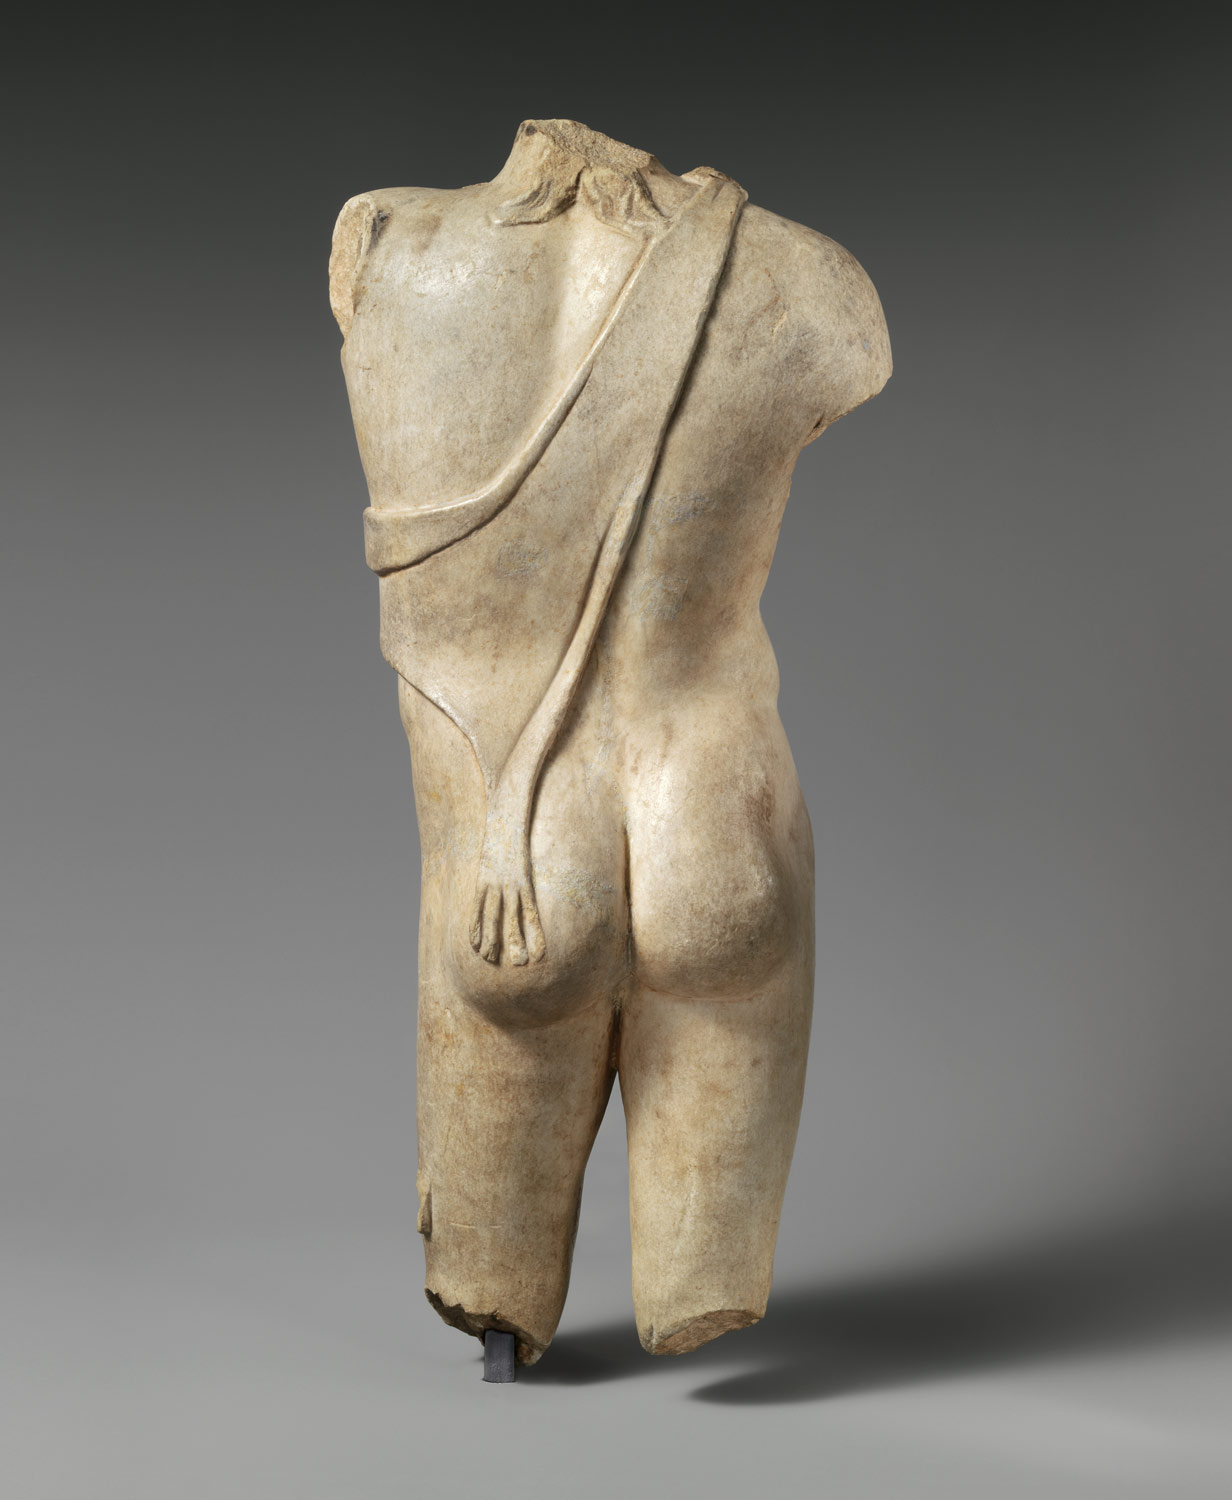 Marble statuette of young Dionysos